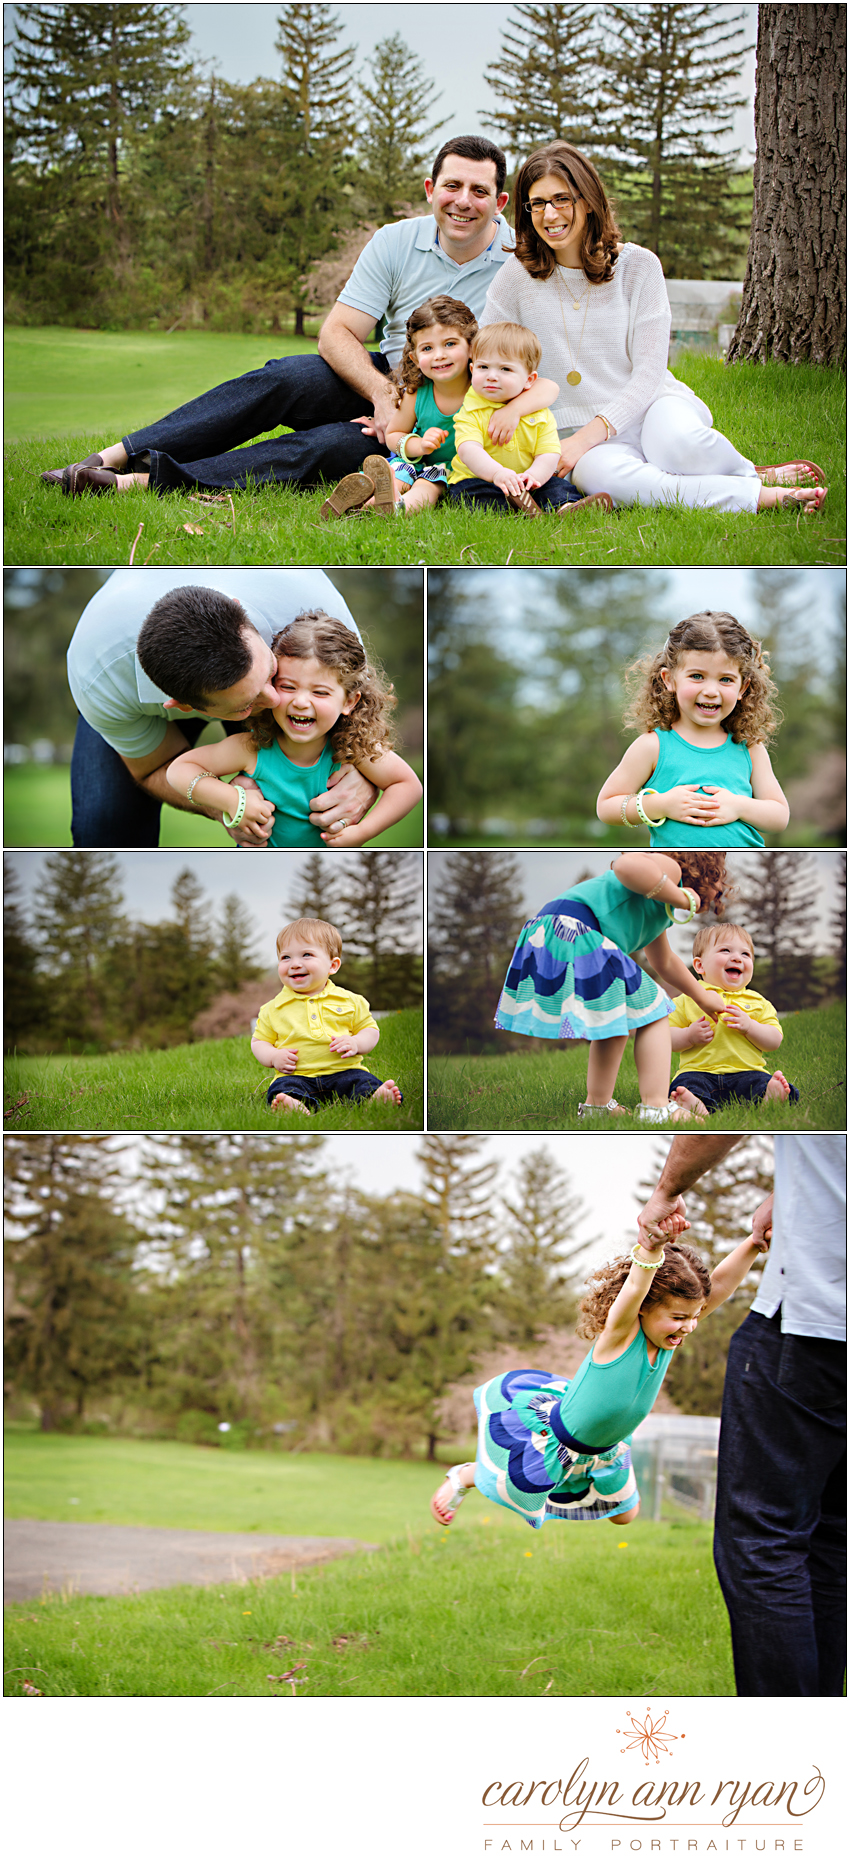 Carolyn Ann Ryan Photography photographs family playing outside in Northern NJ